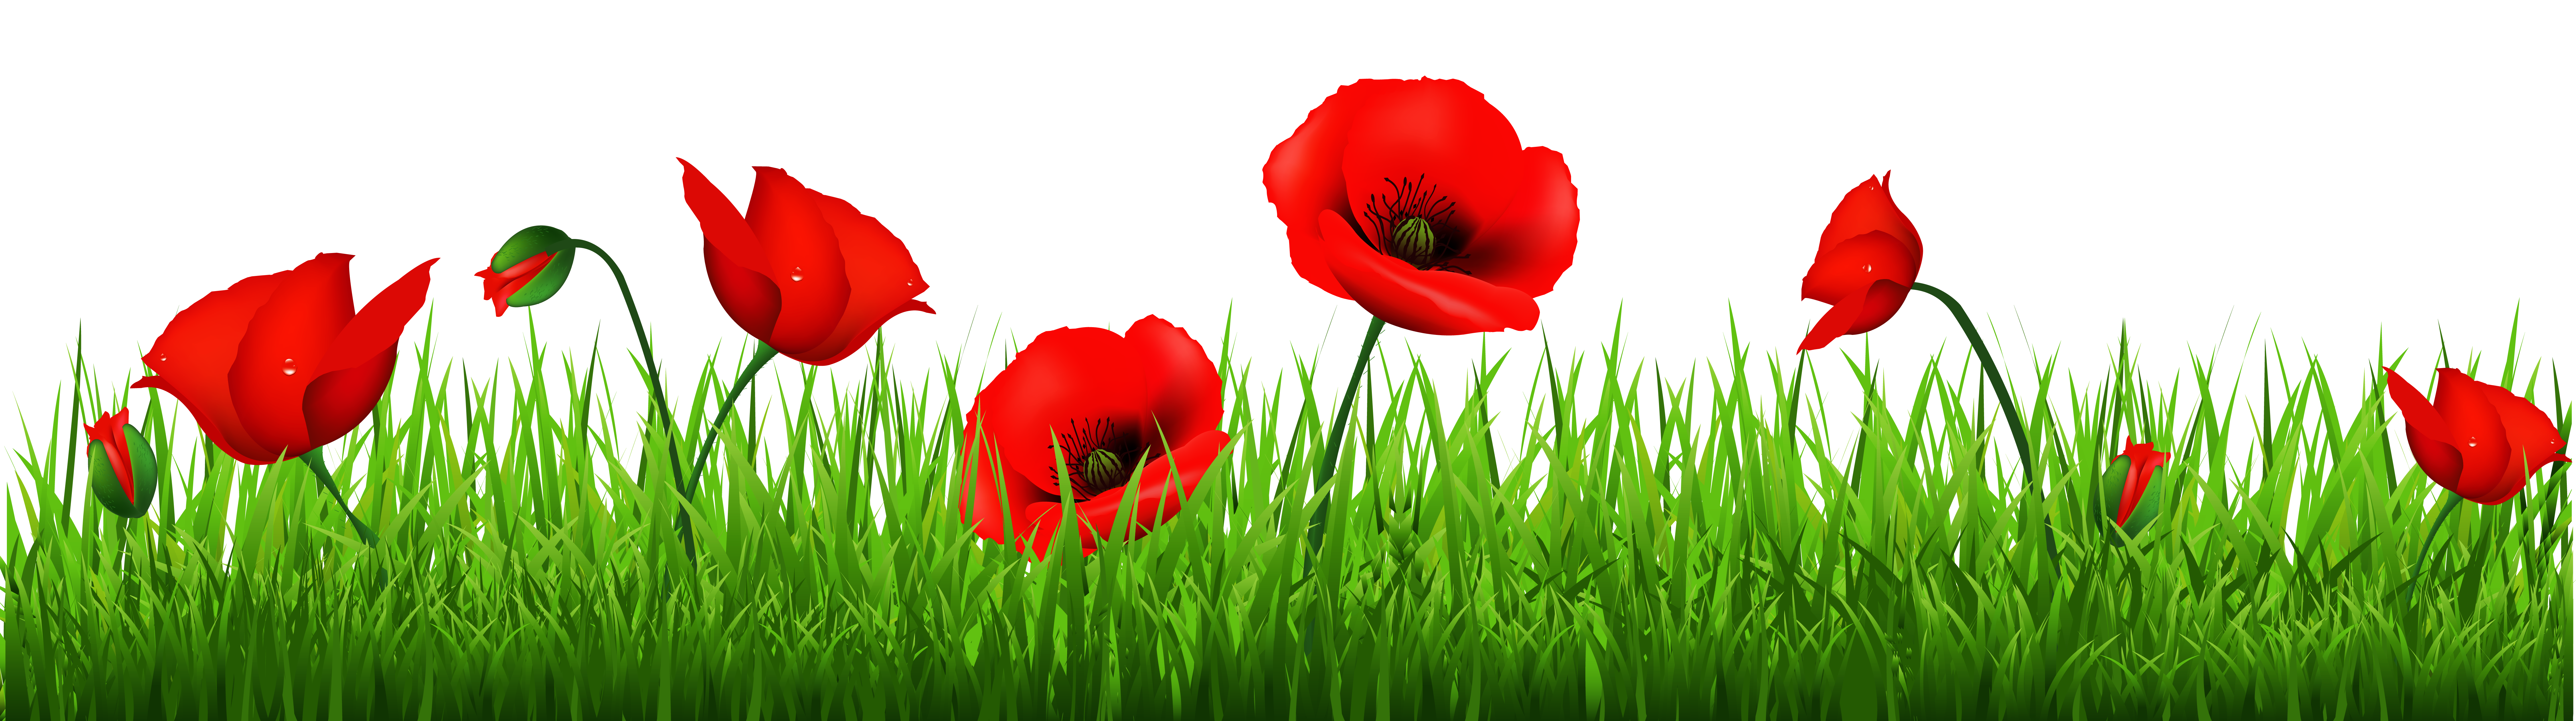 Flowers common armistice day. Poppy clipart copyright free